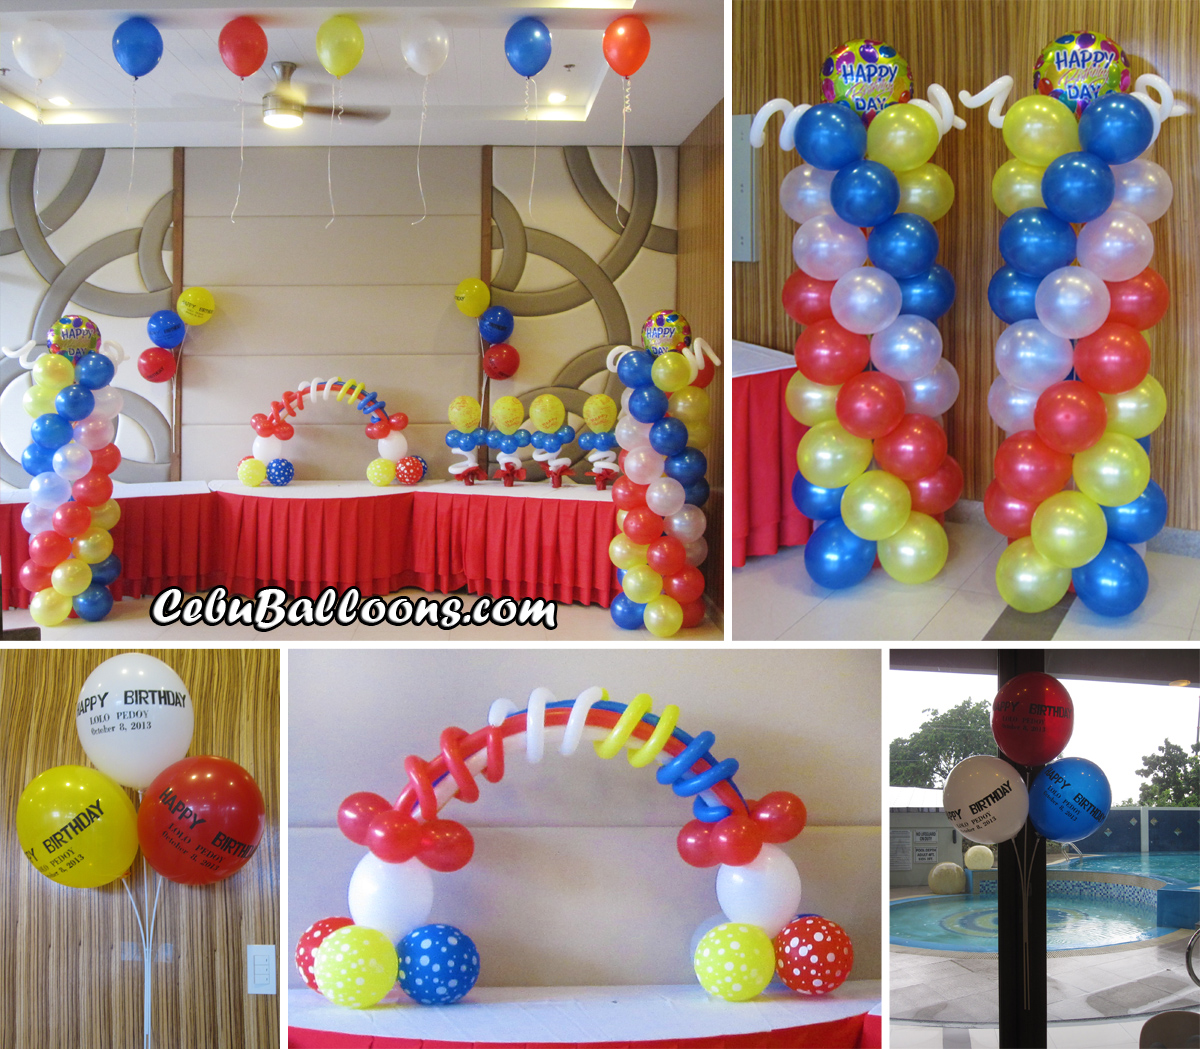 90th Birthday Balloon Decoration at Avalon Ayala Cebu Balloons